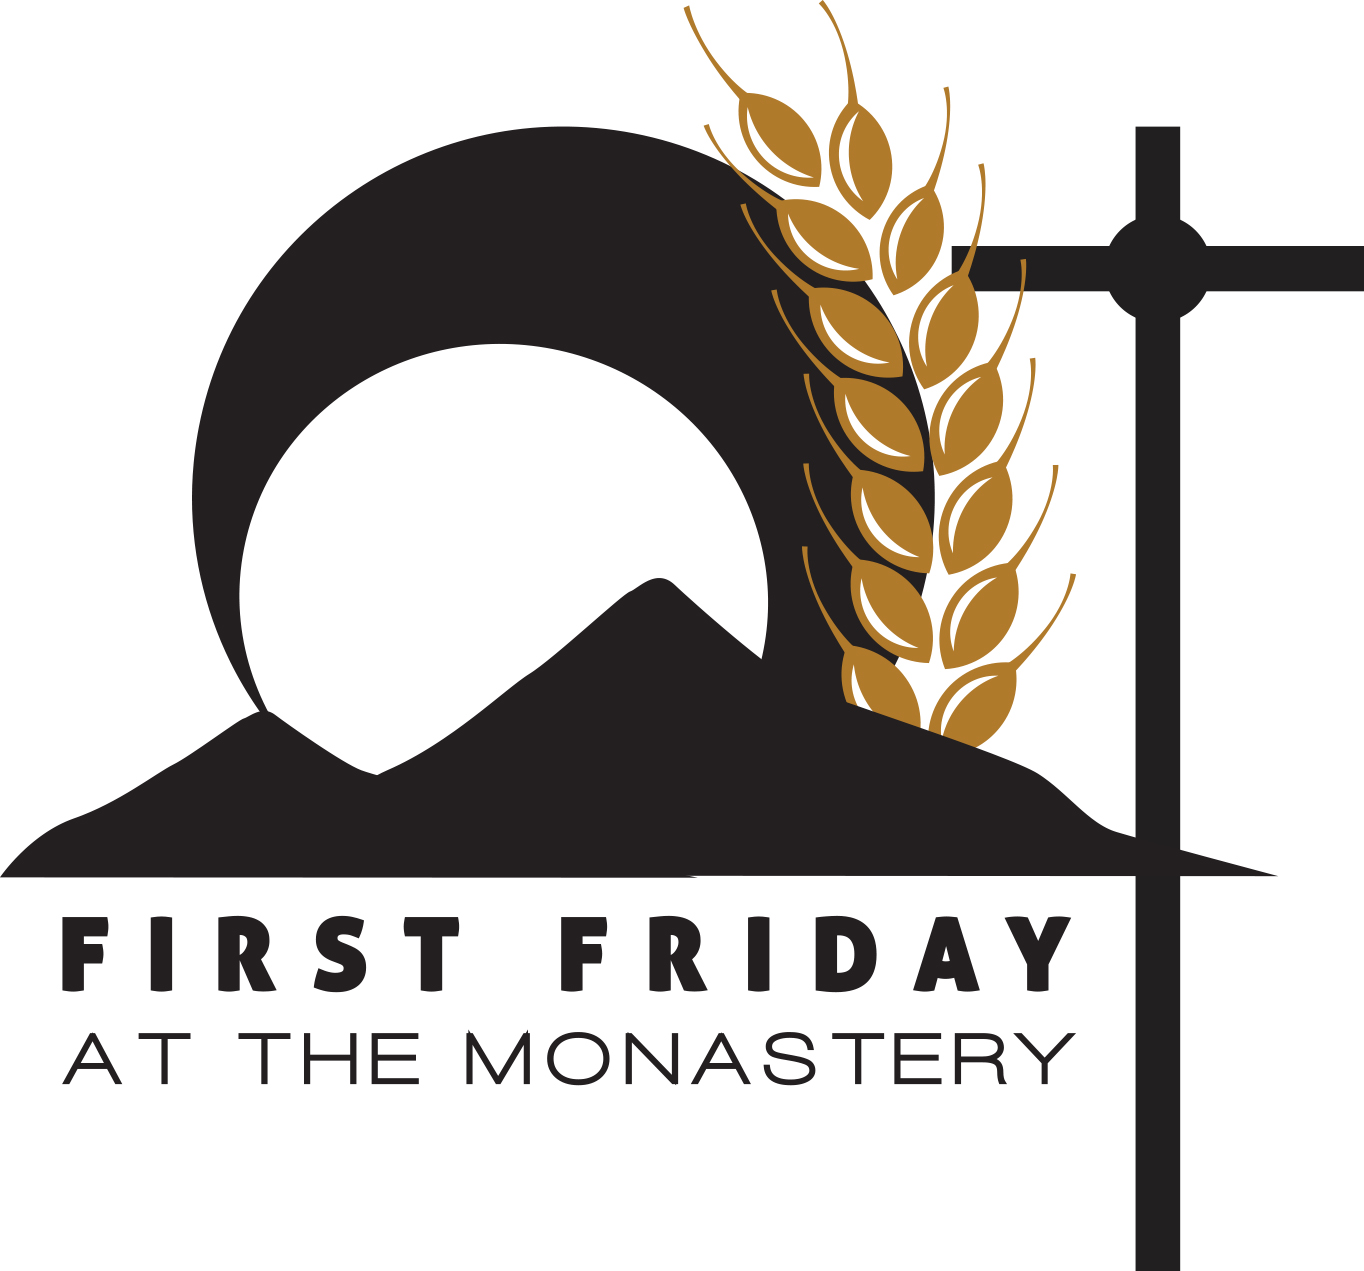 First Friday at the Monastery - DEC 2016